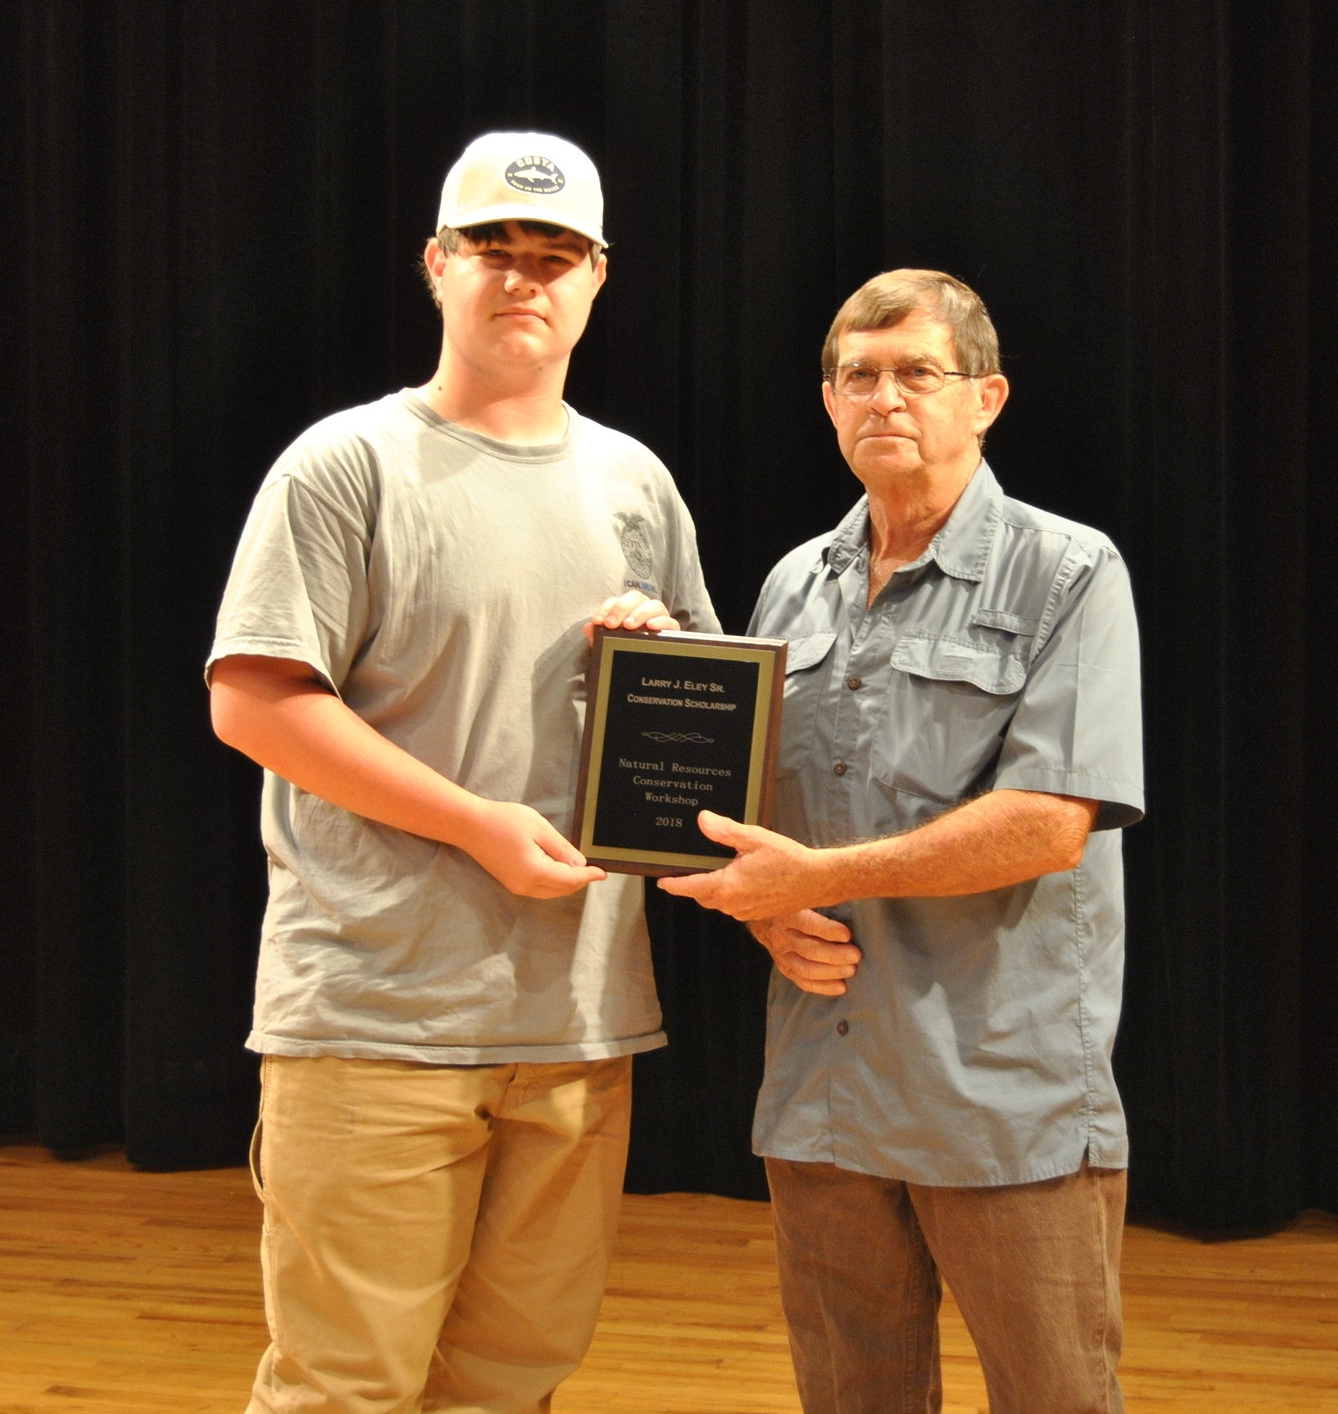 The winner of the first ever $1,500 Larry J. Eley Sr. Memorial Scholarship is Matthew Roberts! Matthew is a rising senior at  Putnam County High School . Pictured with Matthew is Piedmont Soil & Water Conservation District Chairman Pat Hardy.